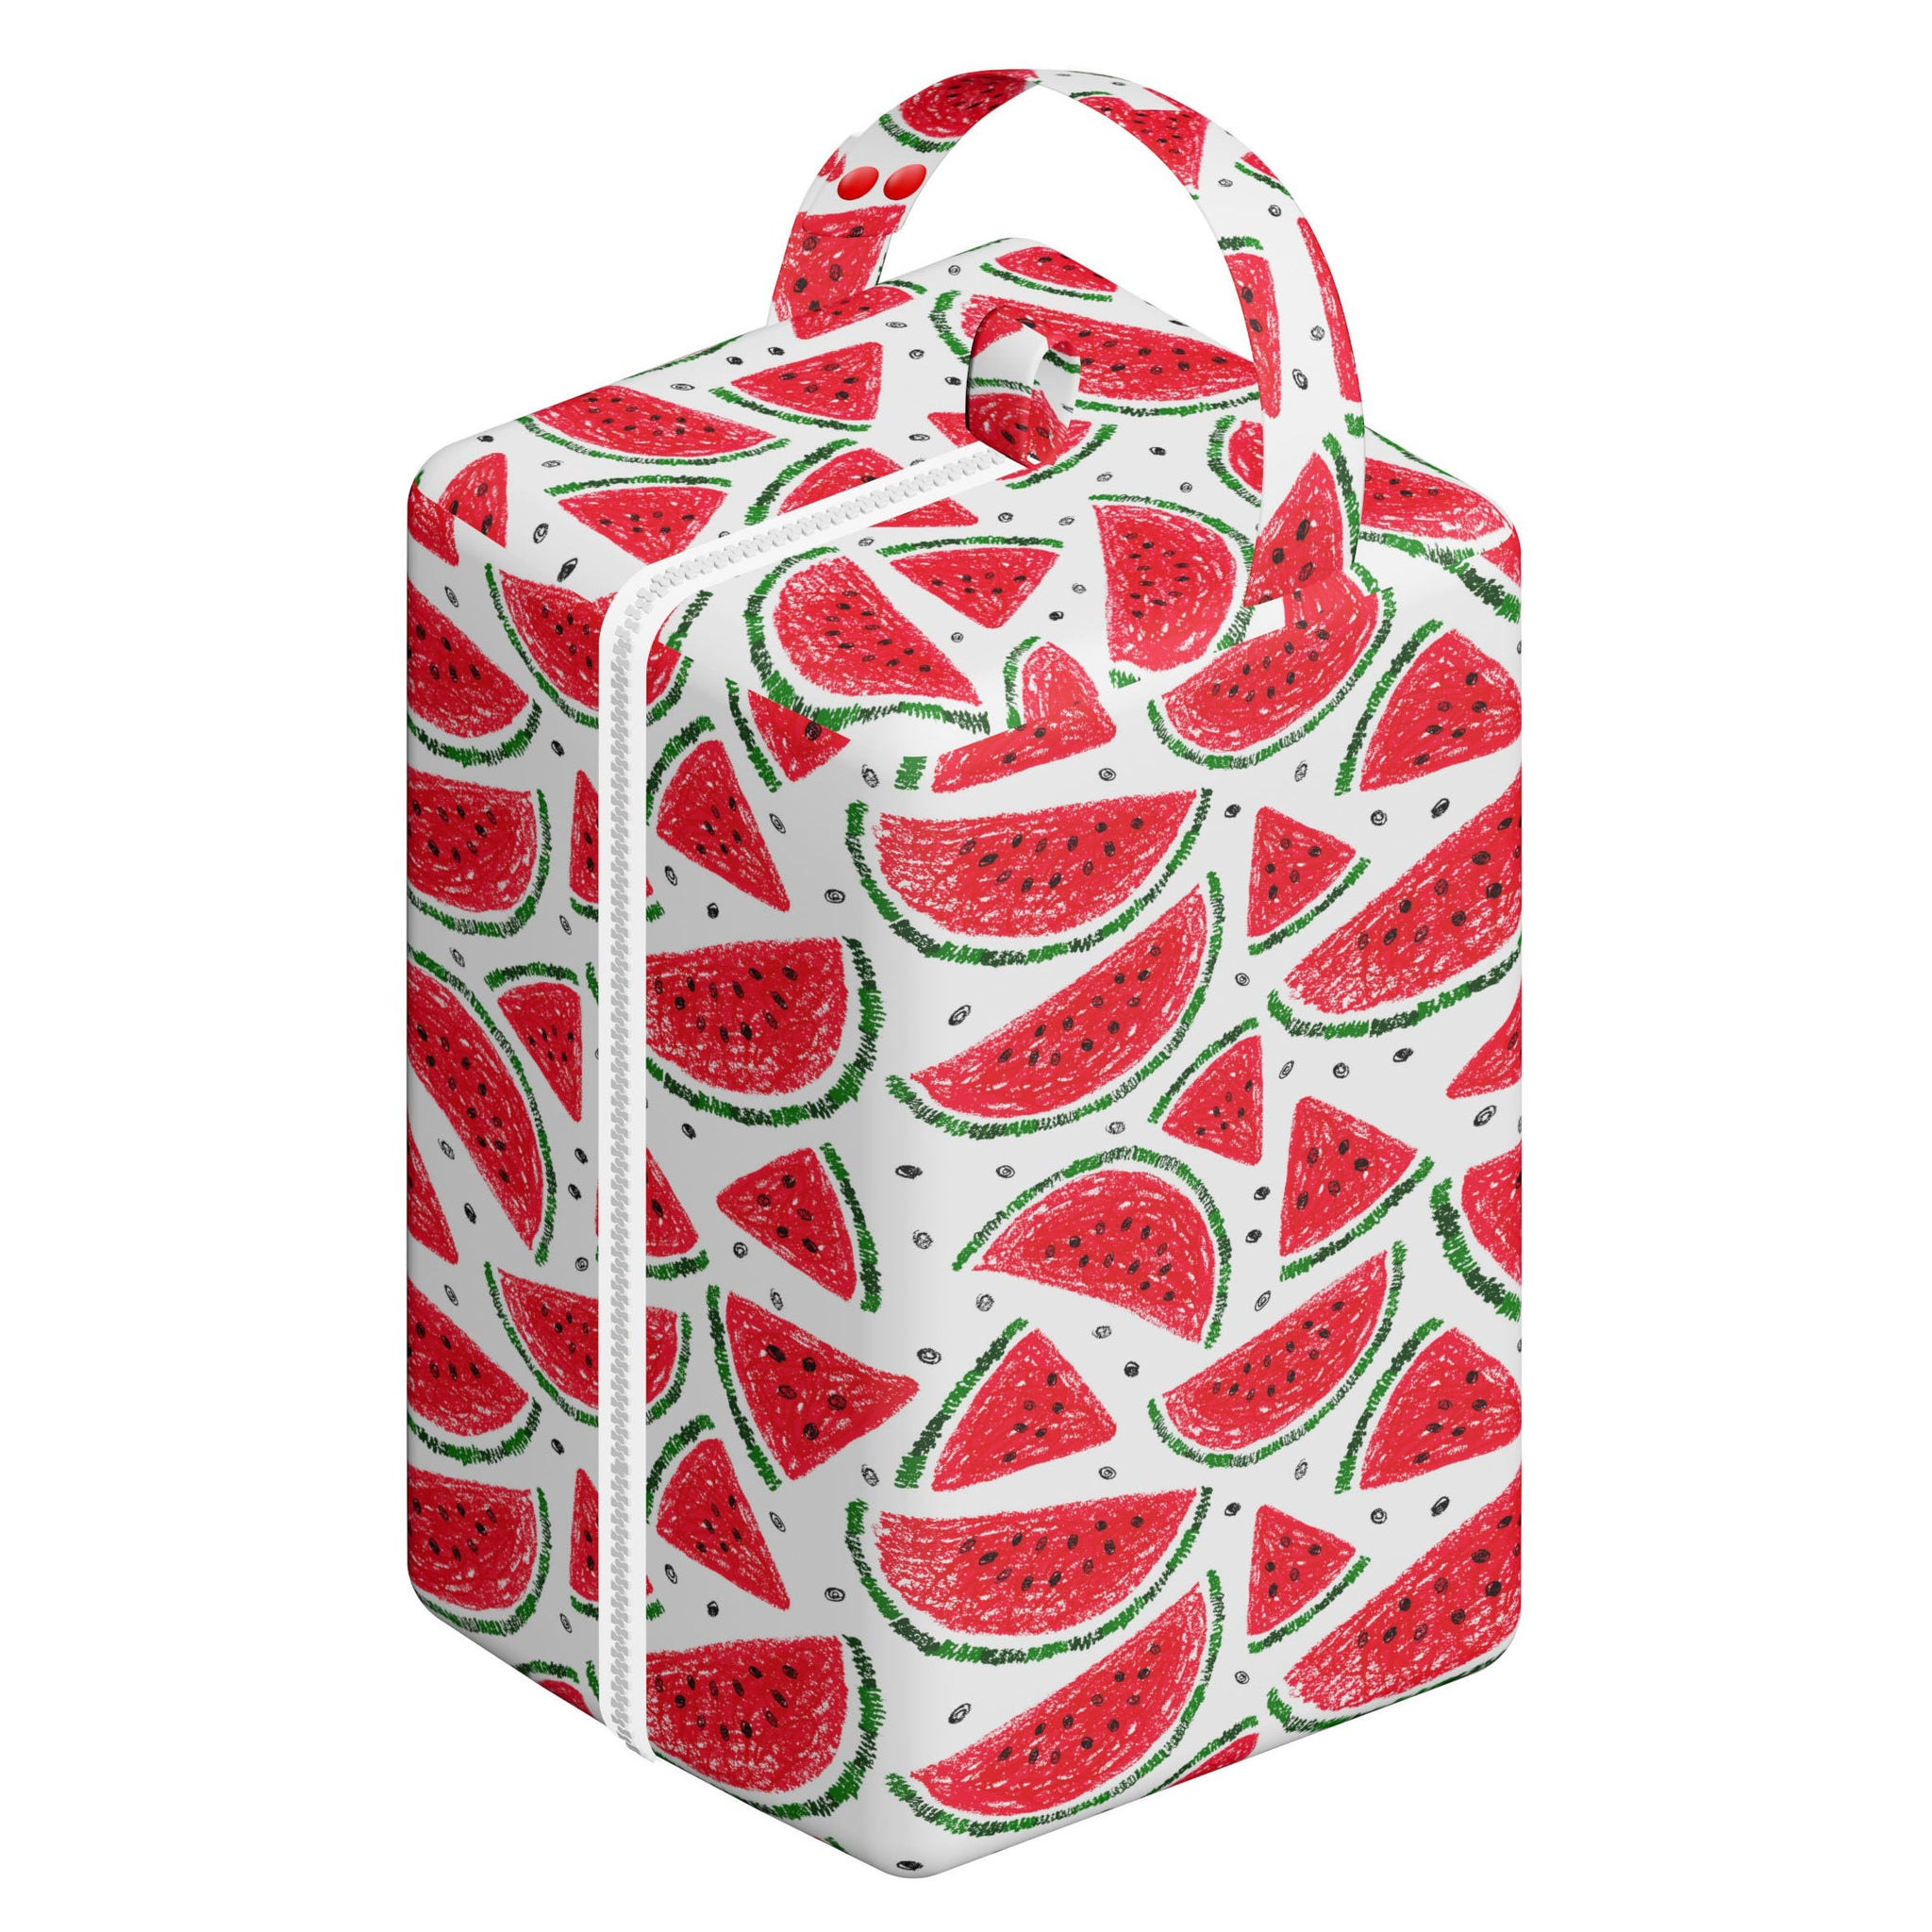 Nappy Box Co Watermelons Print Nappy Pod Zip Wet Bag